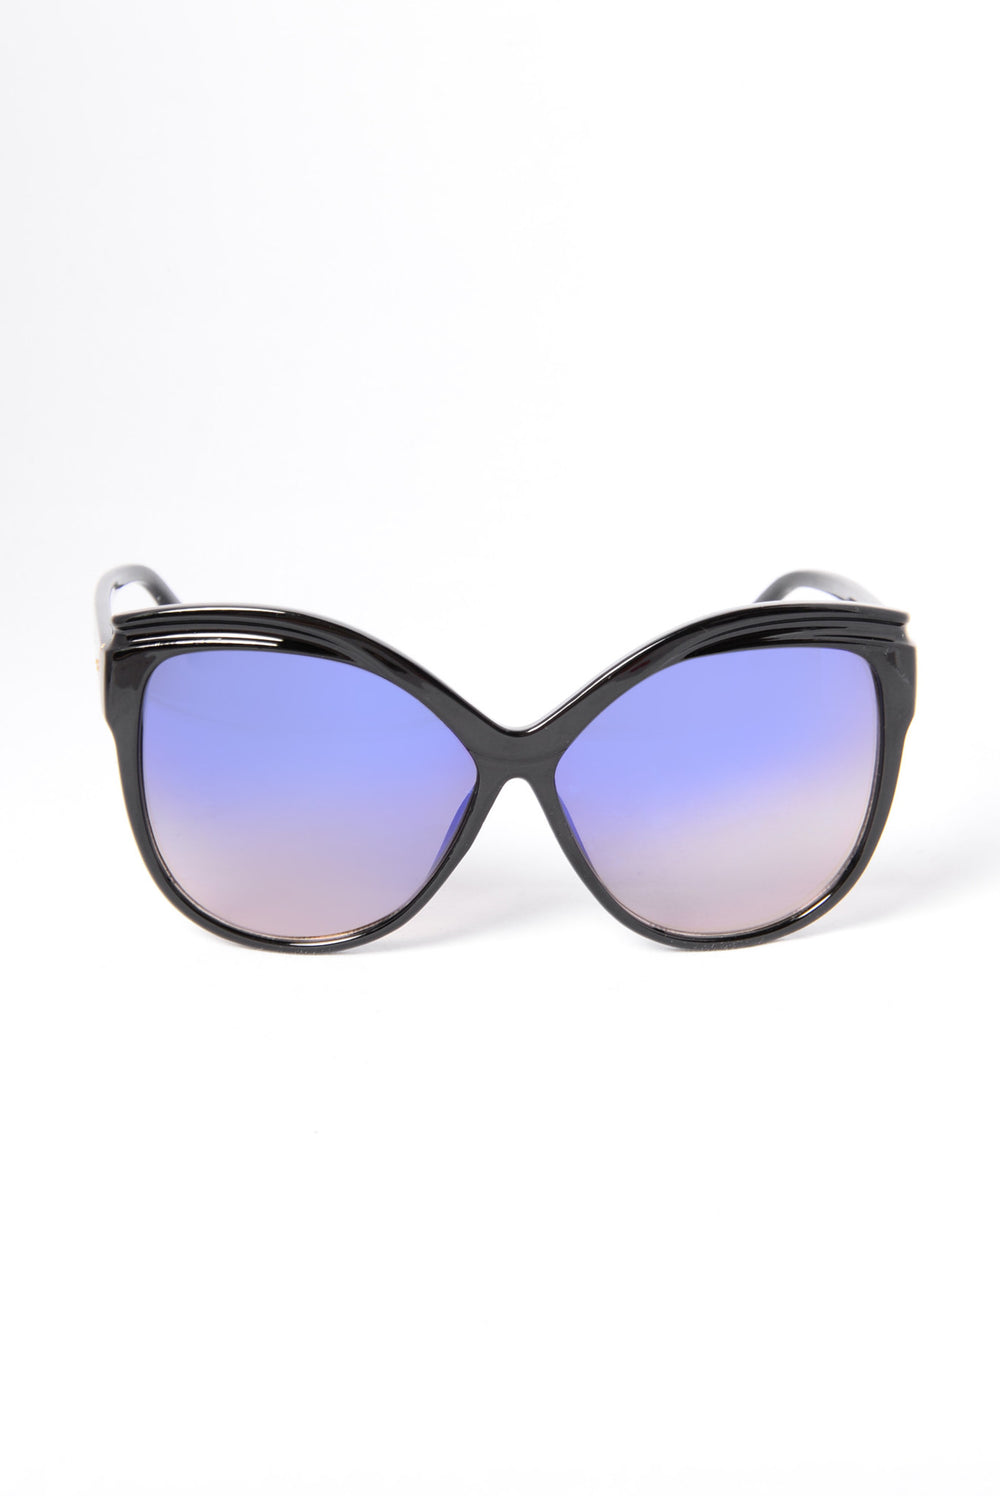 Bottoms Bay Sunglasses - Black/Blue